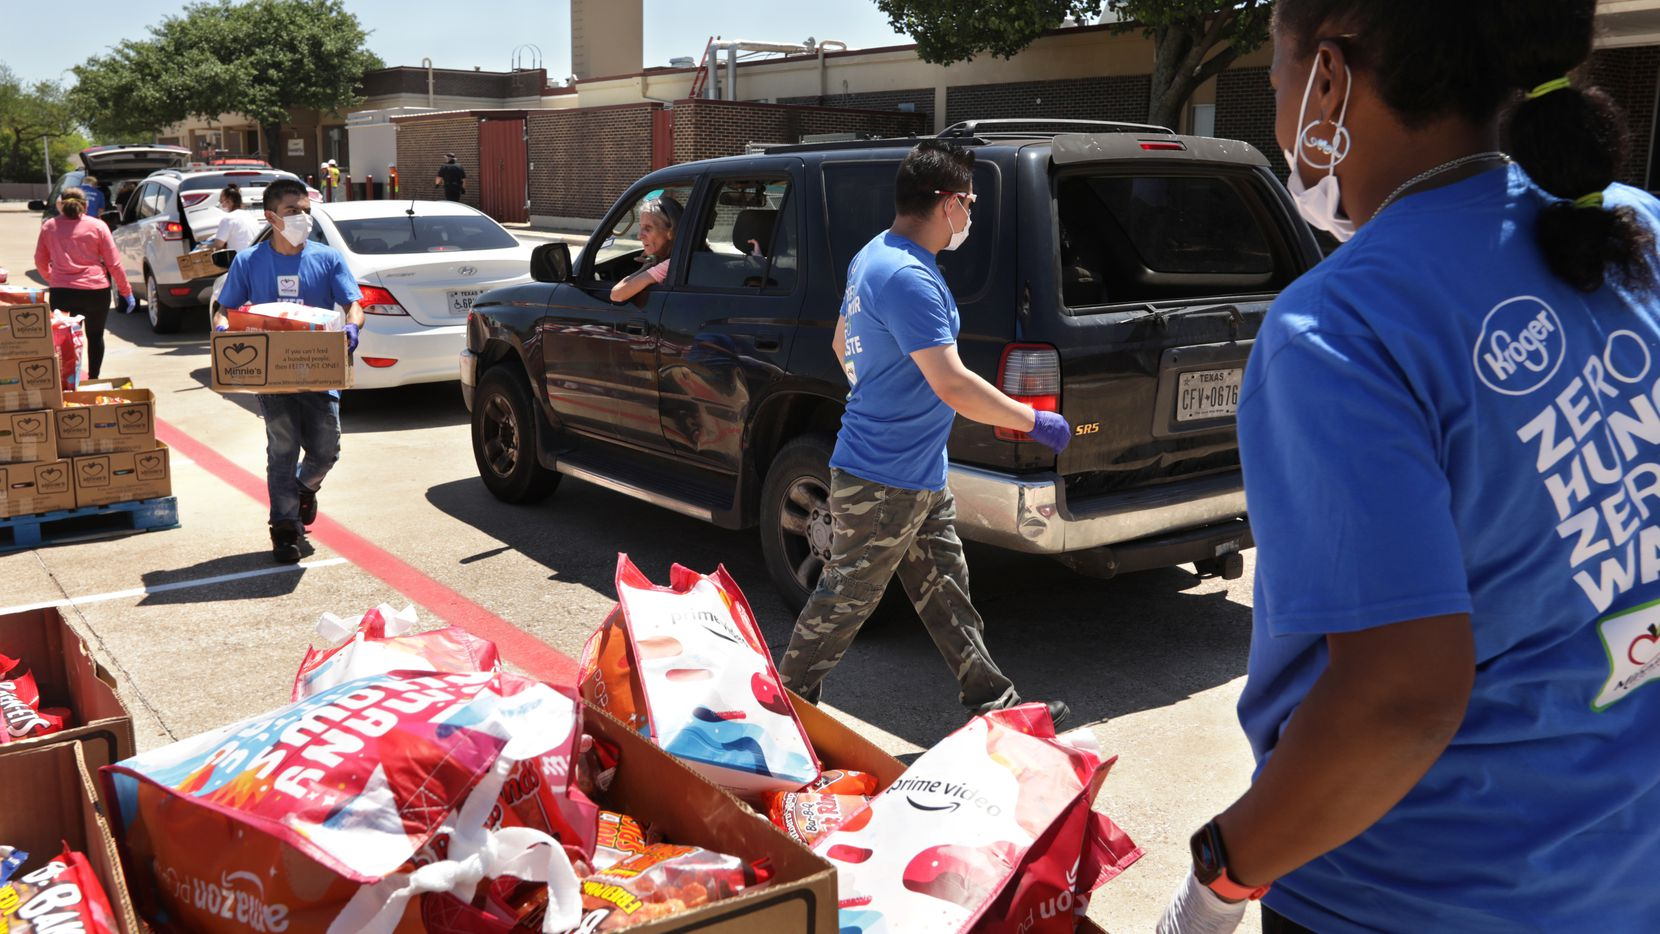 Minnie's Food Pantry has a partnership with Plano ISD to feed students whose households may be facing food insecurity. Here volunteers are serving more than 750 families at Bowman Middle School in Plano.